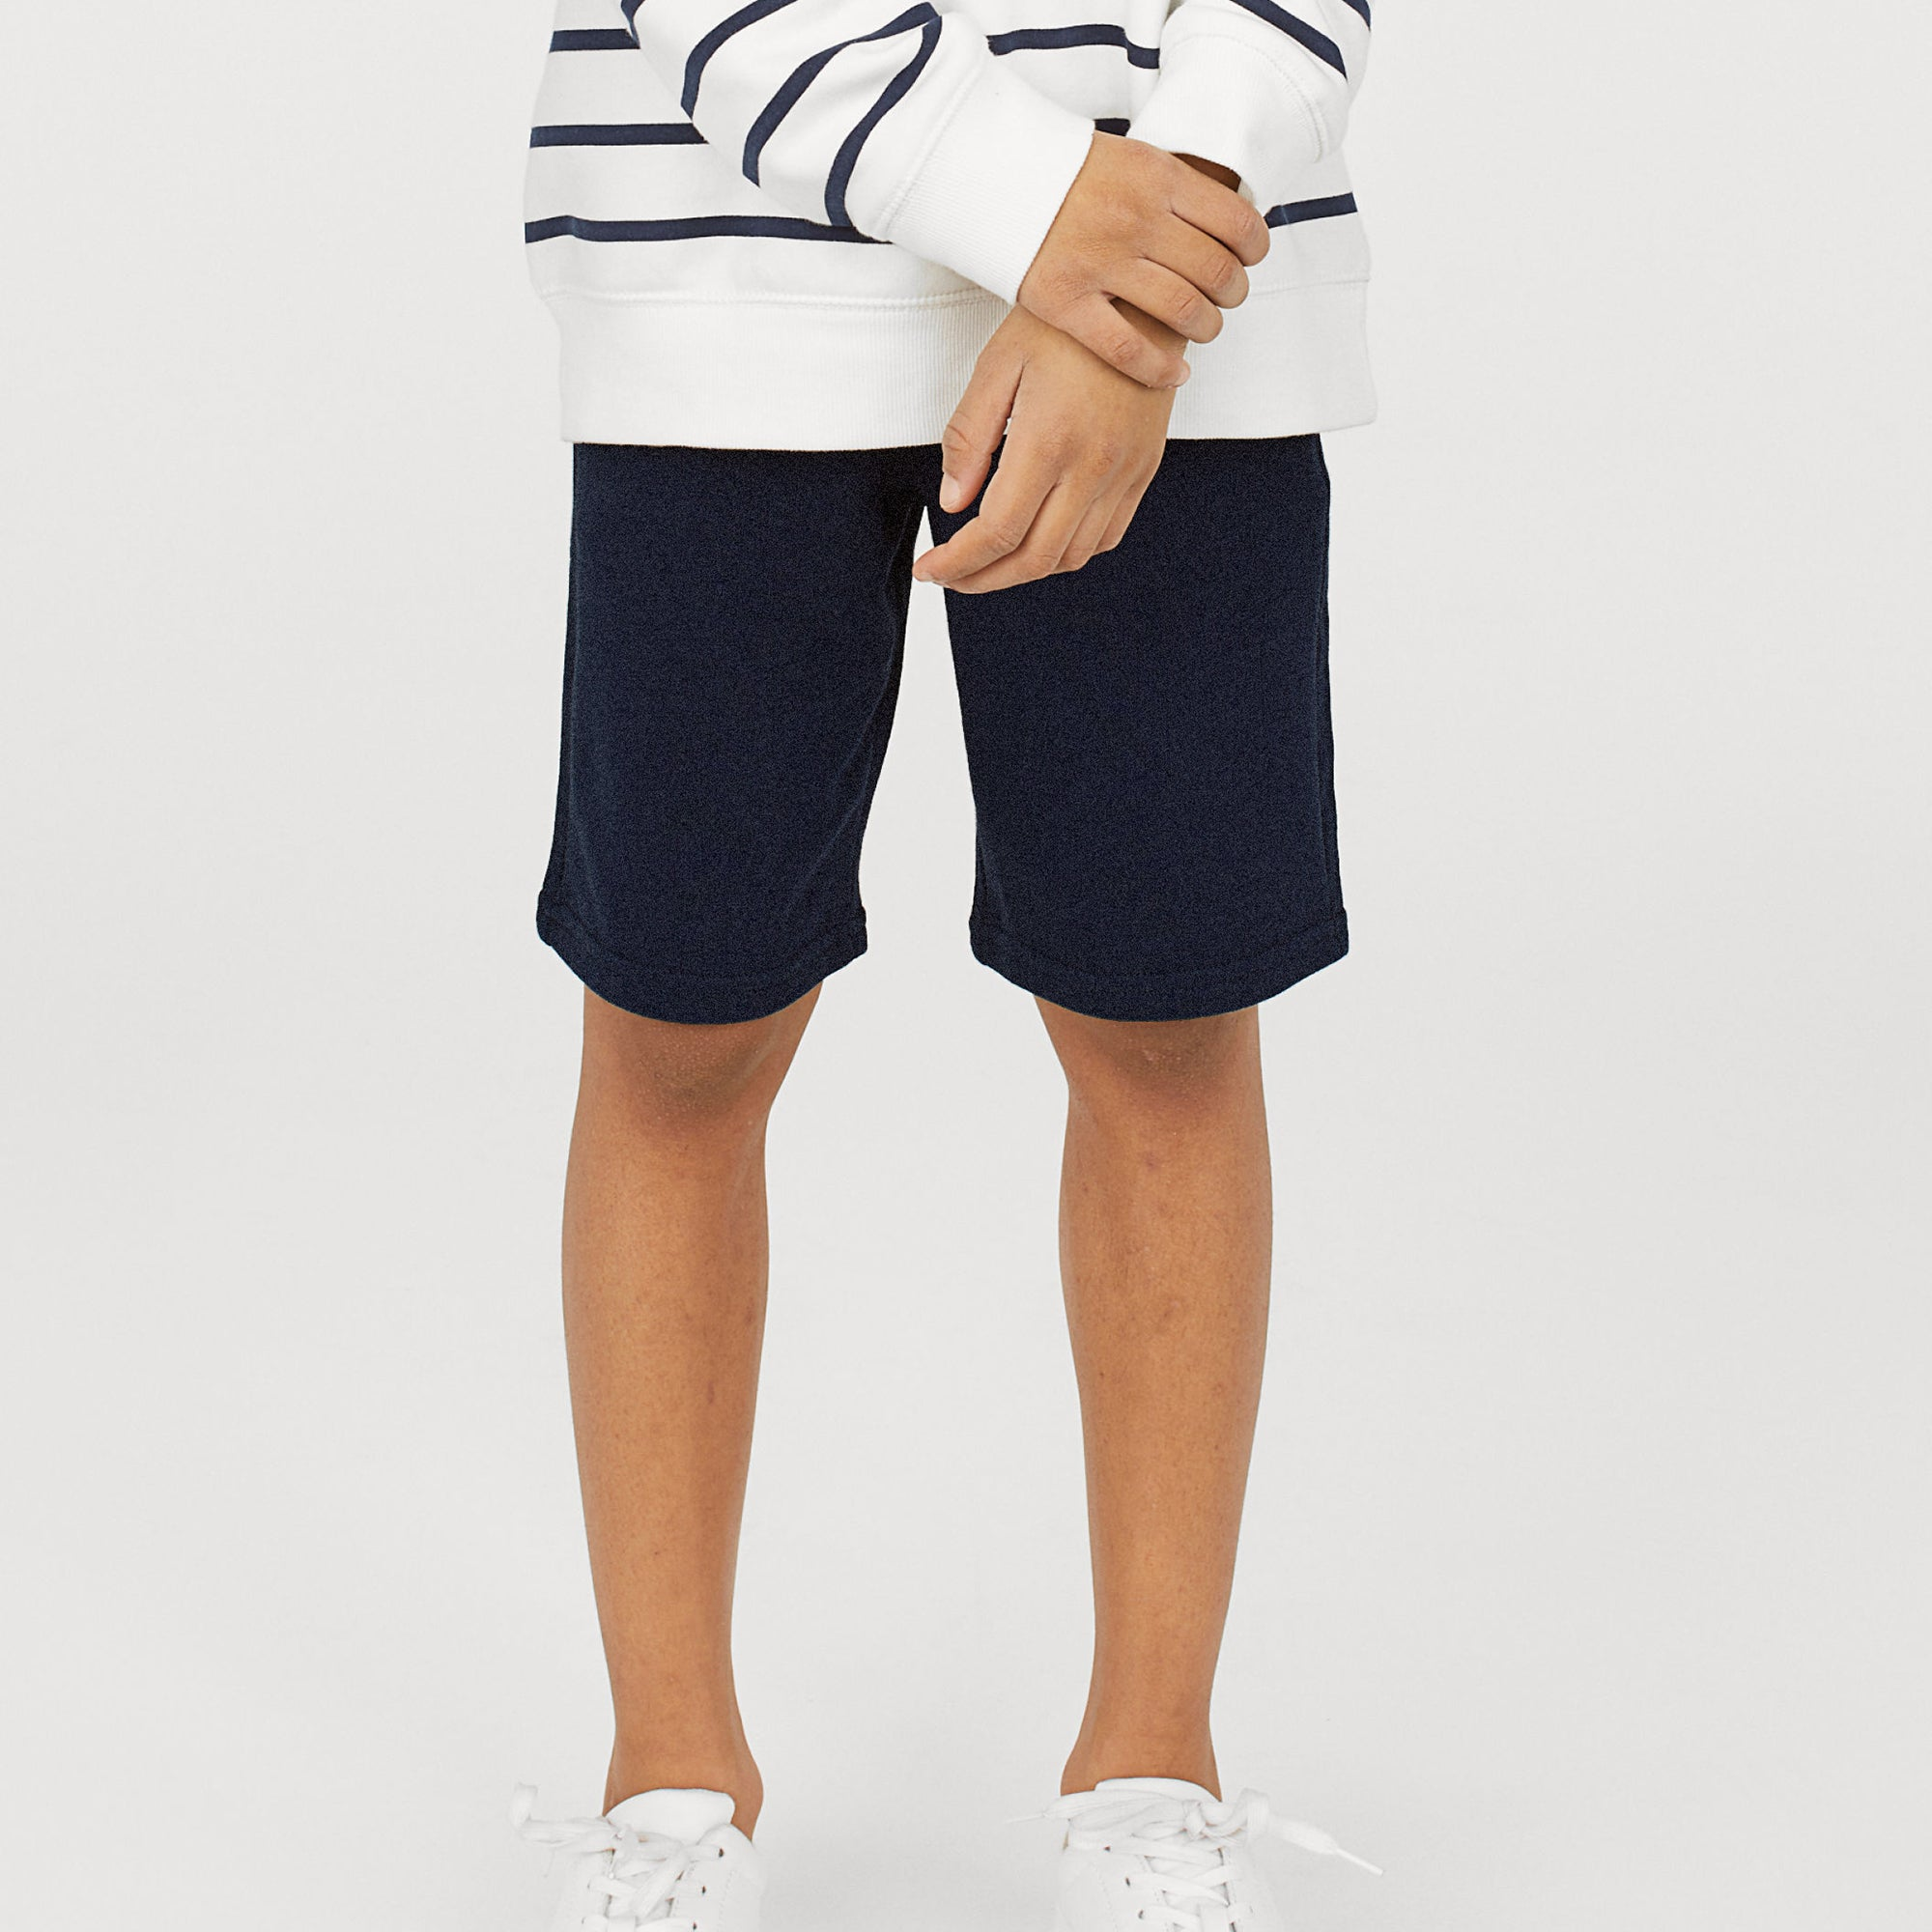 Vivance Single Jersey Summer Short For Boys-NA8638